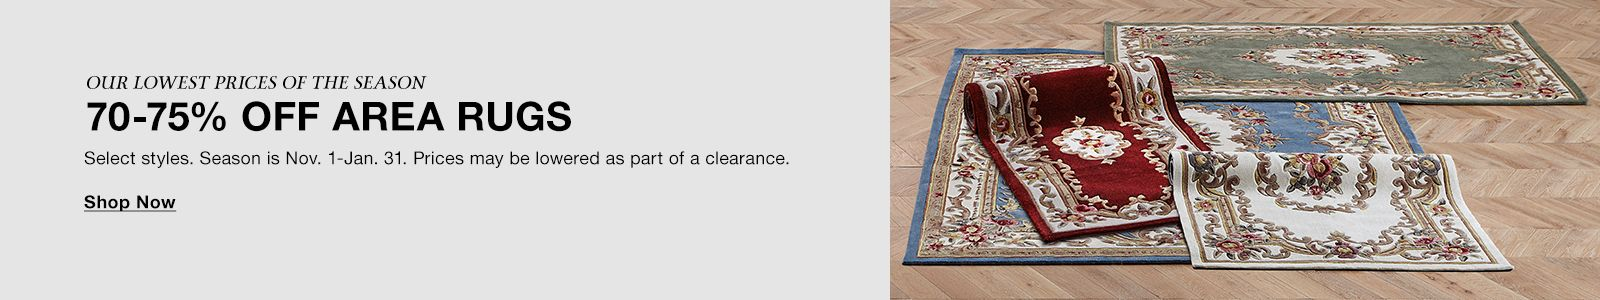 Our Lowest Prices of the Season, 70-75 percent off Area Rugs, Select Styles, Season is Now, 7-Jan, 31, Prices may be lowered as part of a clearance, Shop Now